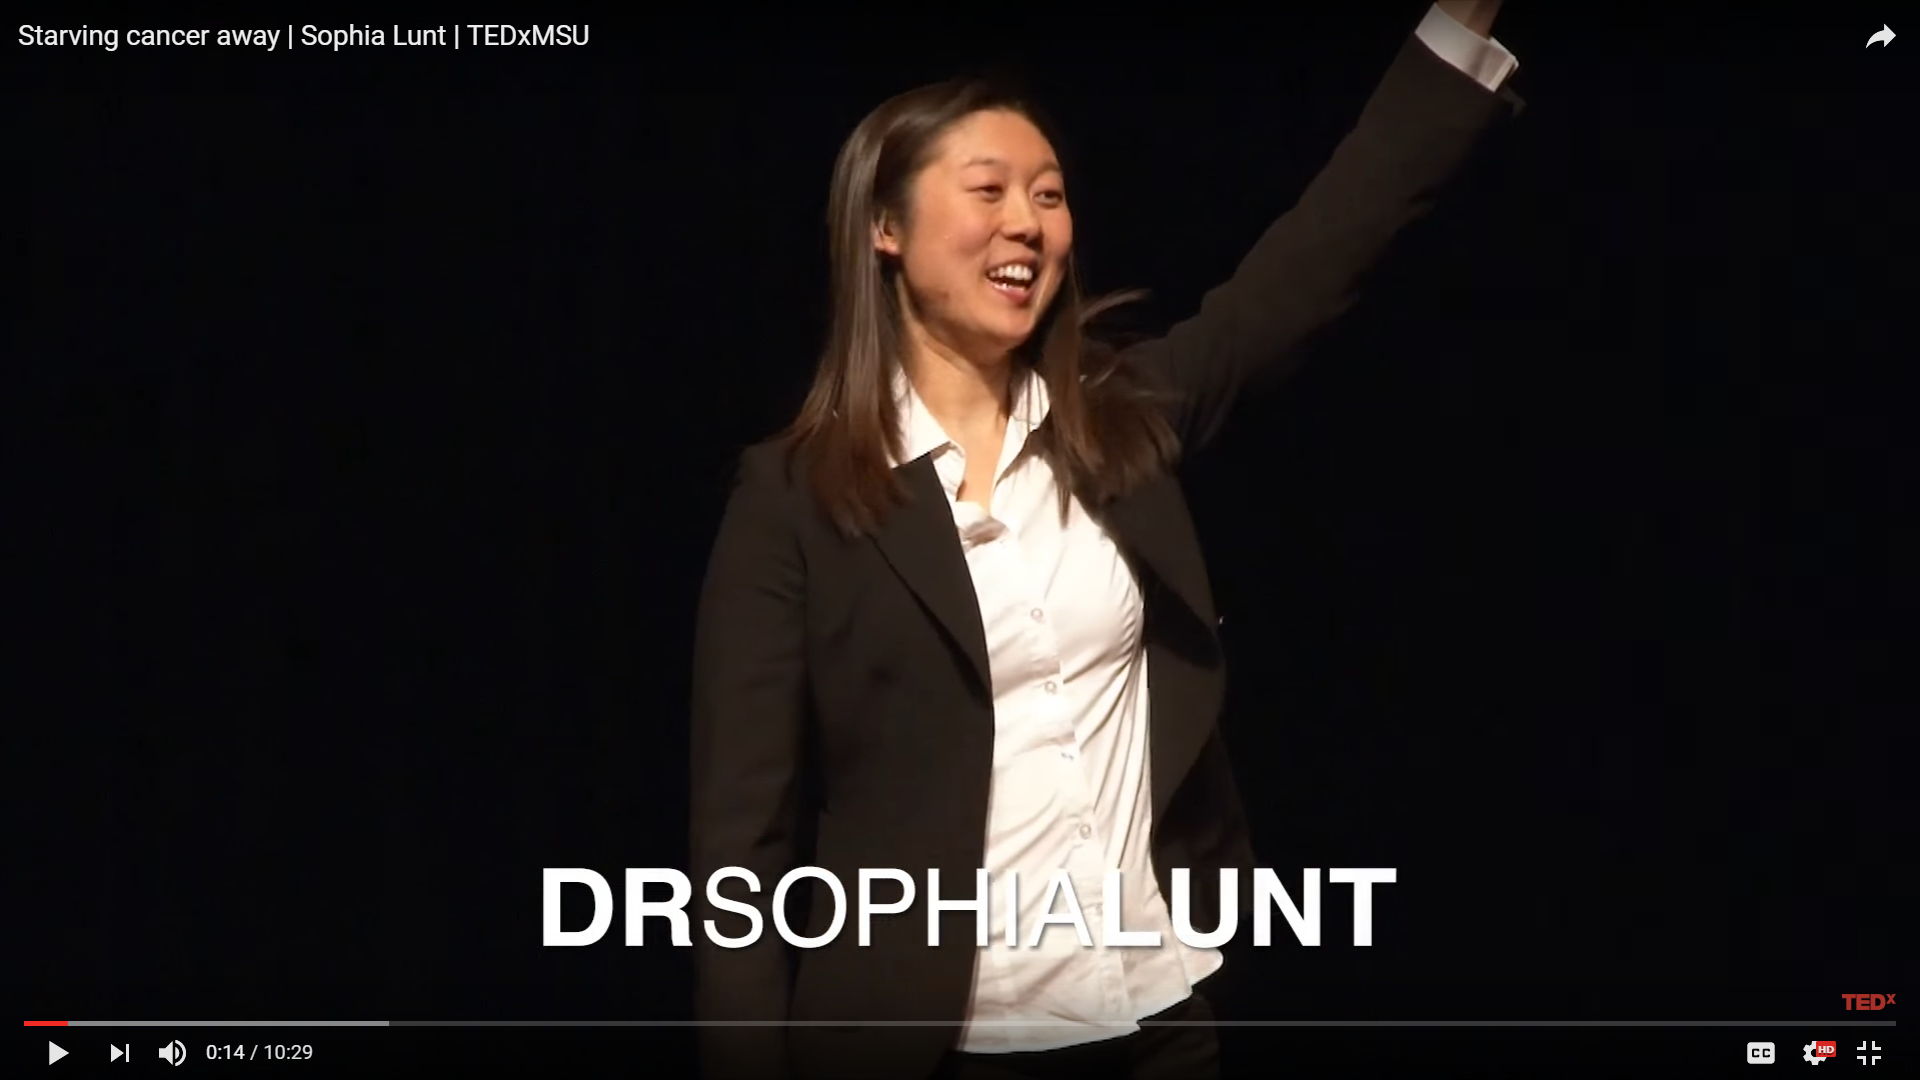 Dr. Lunt gives TEDx talk